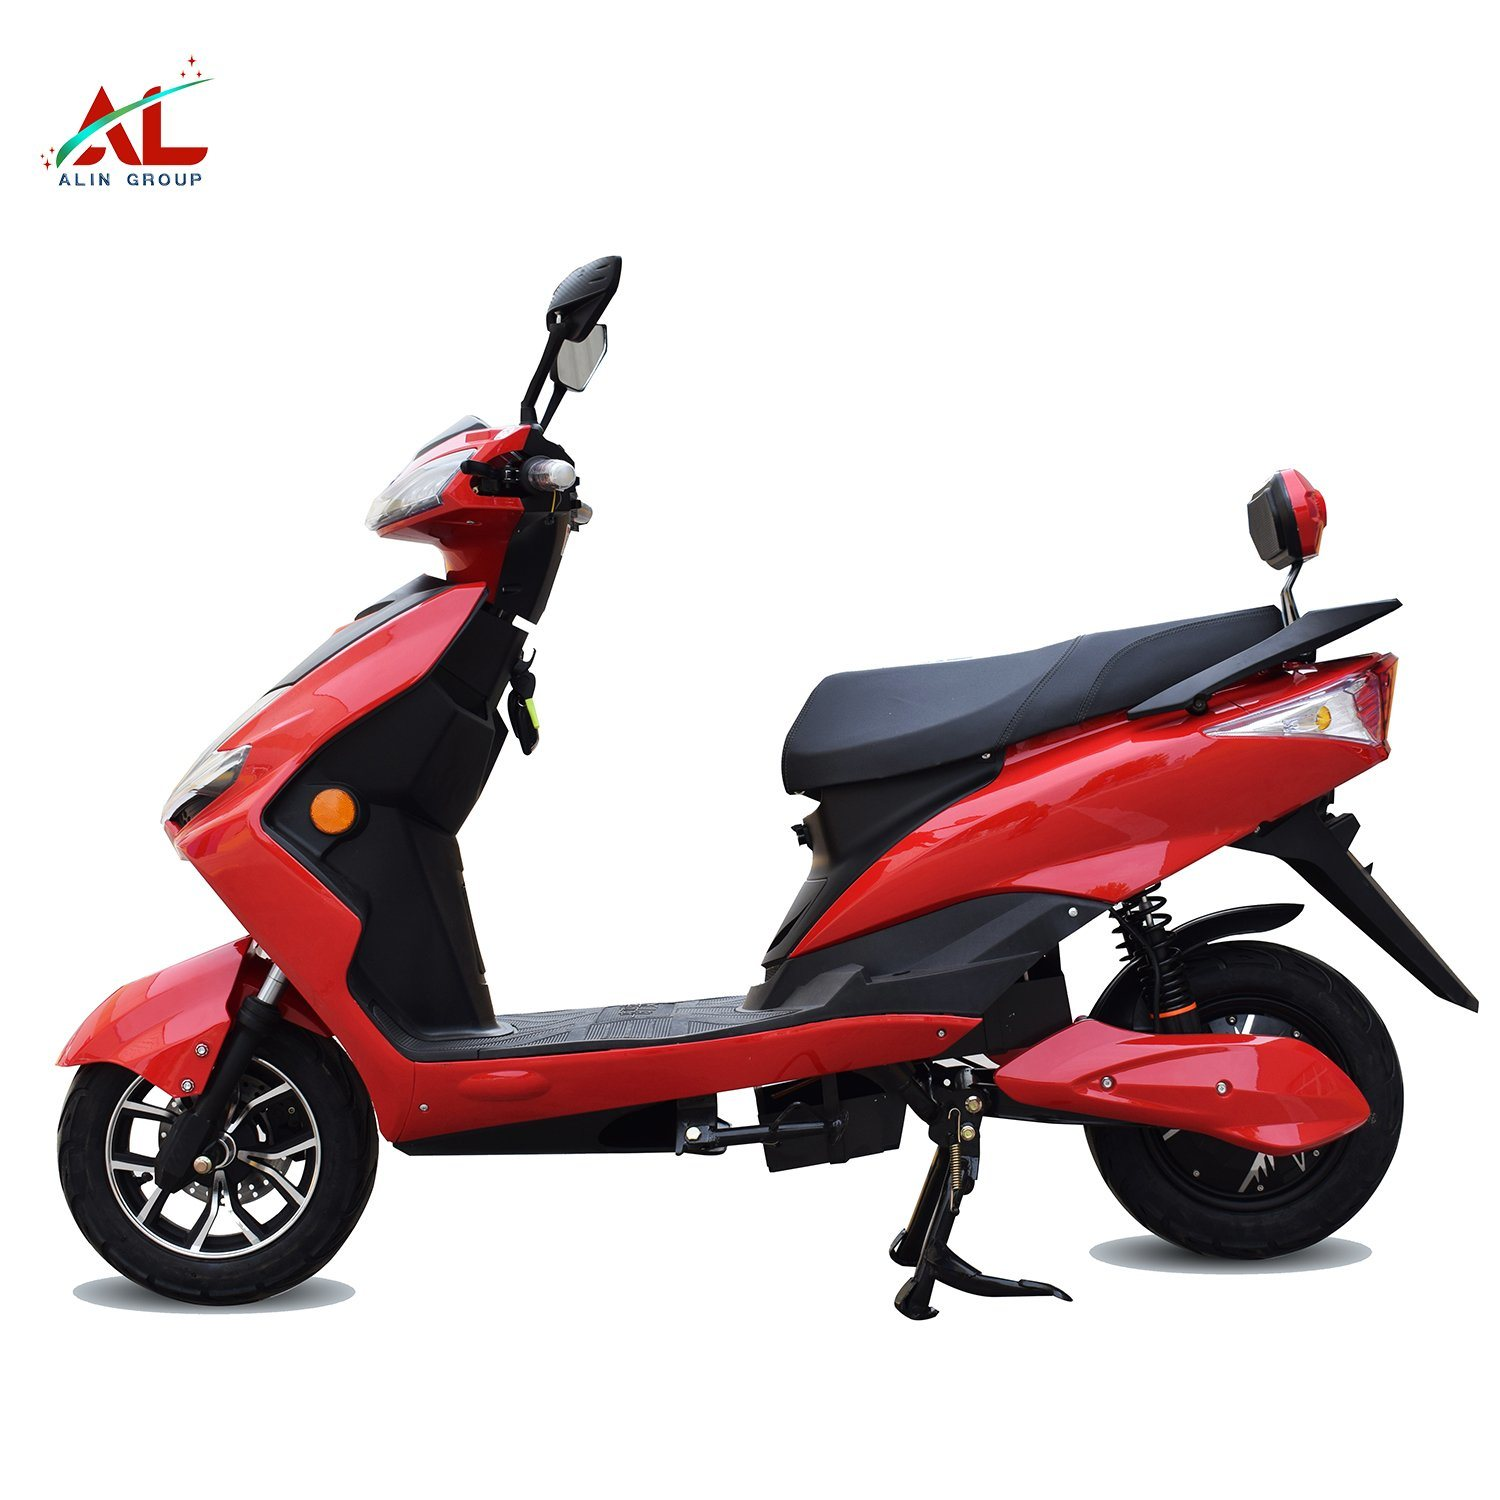 Al Zs Chinese Hot Sale Battery Electric Scooter Price China Electric Motorcycle Electric Motorcycle Price